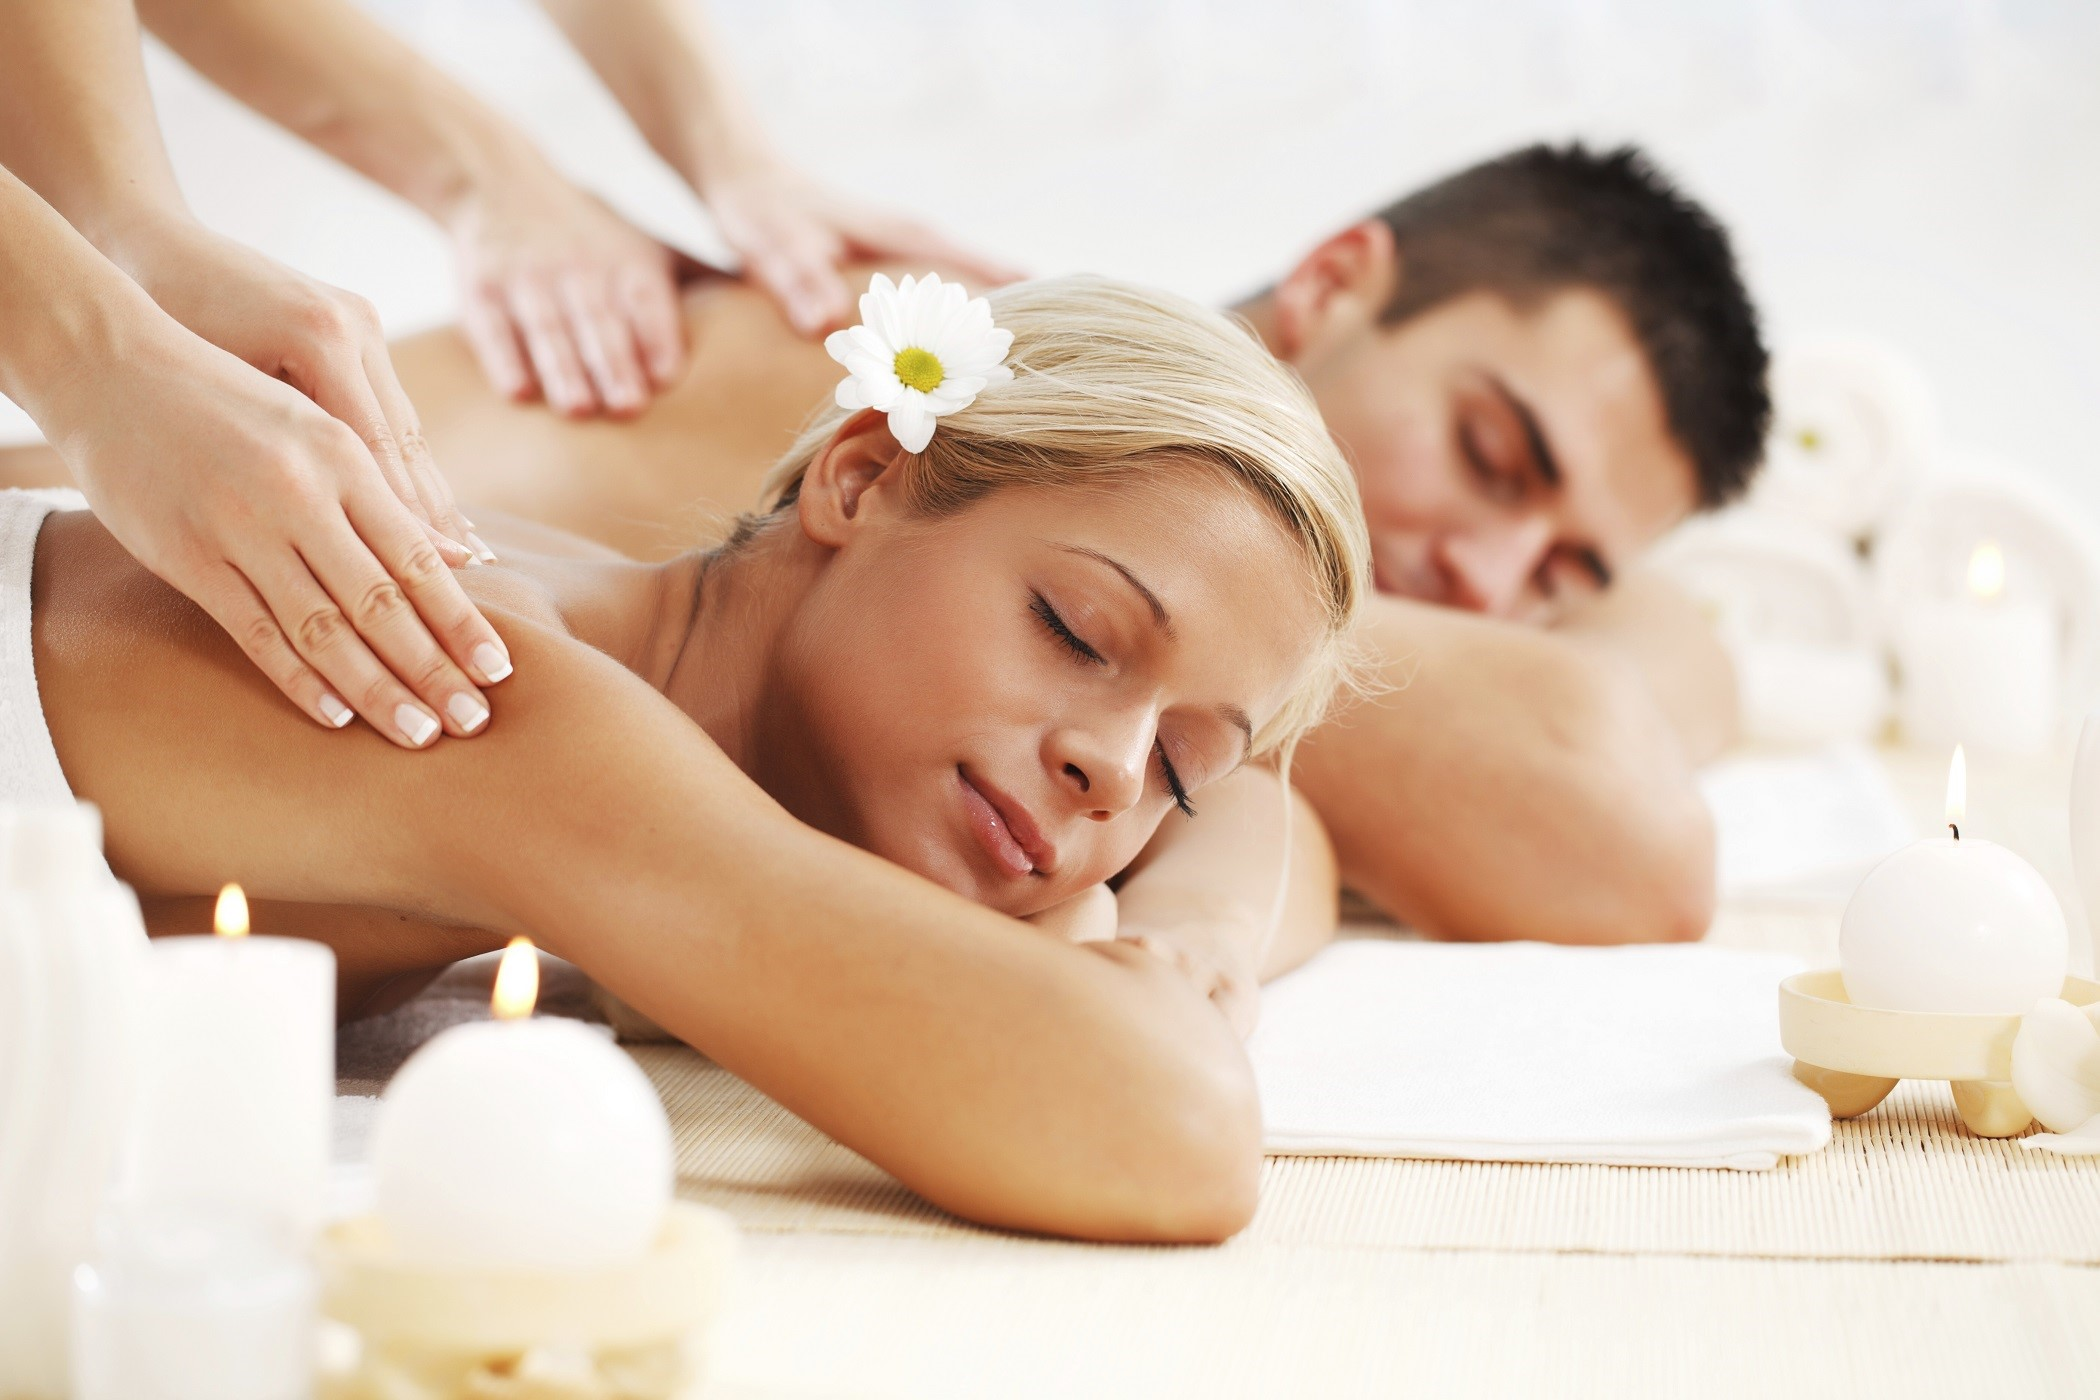 Magic - It's Wonderful to Relieve Stress and Pain by Massage Therapy!